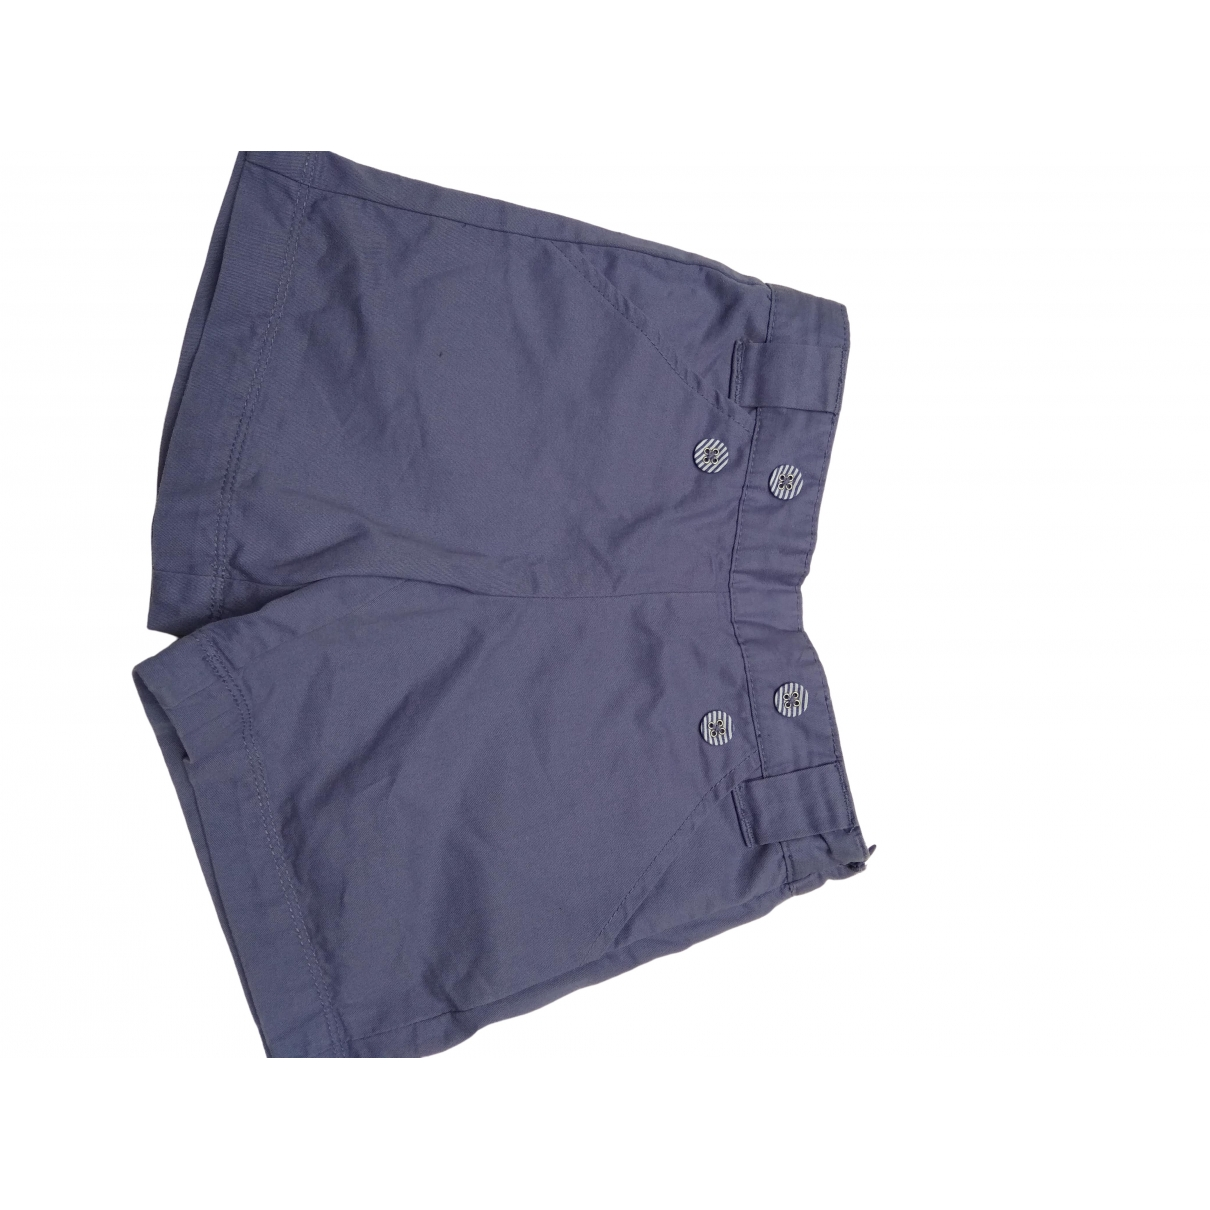 Cyrillus \N Blue Cotton Shorts for Kids 4 years - up to 102cm FR